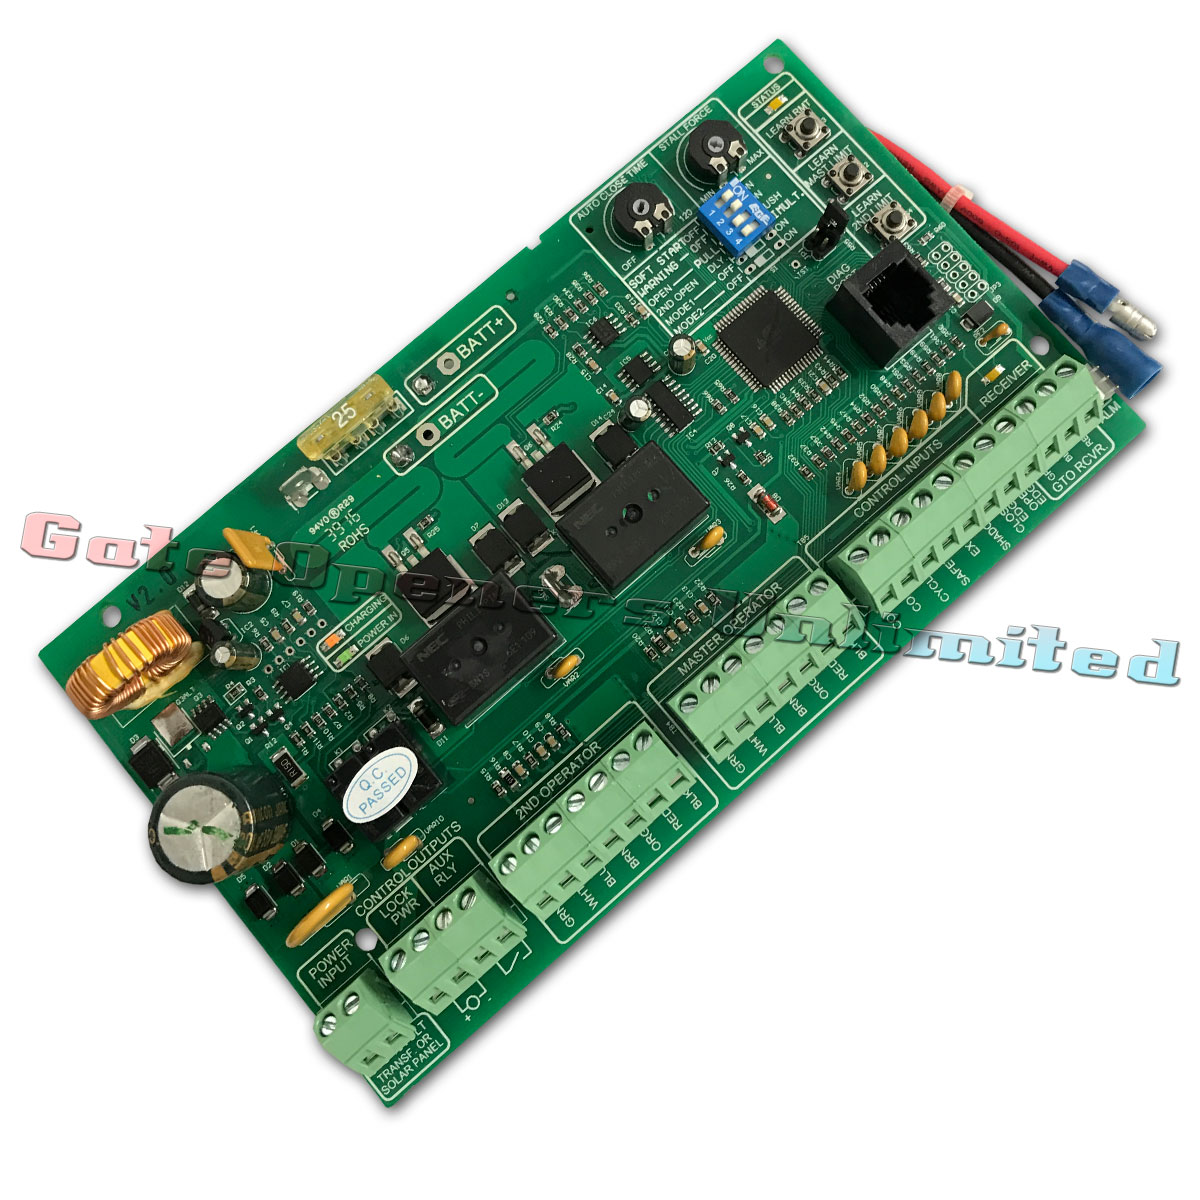 mighty mule r4211 circuit board, mighty mule replacement control